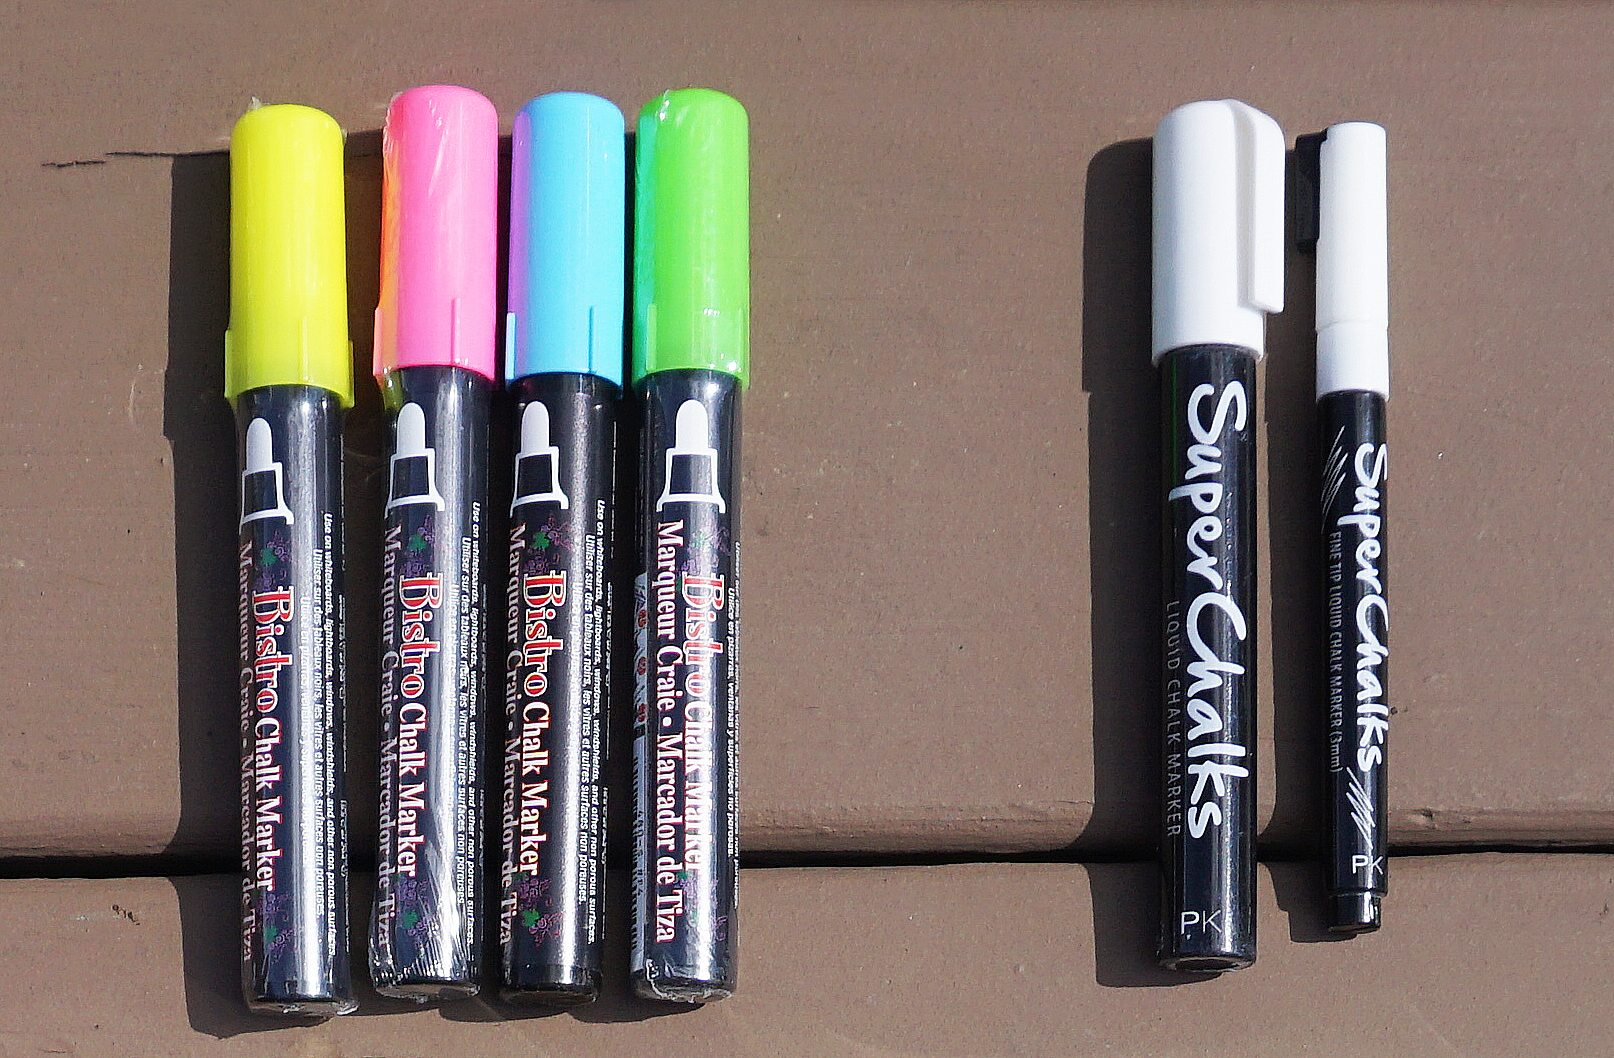 I have the four Bistro Chalk Markers as my neon options in case I need them and tend to use the white Super Chalks a lot when I need white markers, which is why I have both the fine and thick versions.